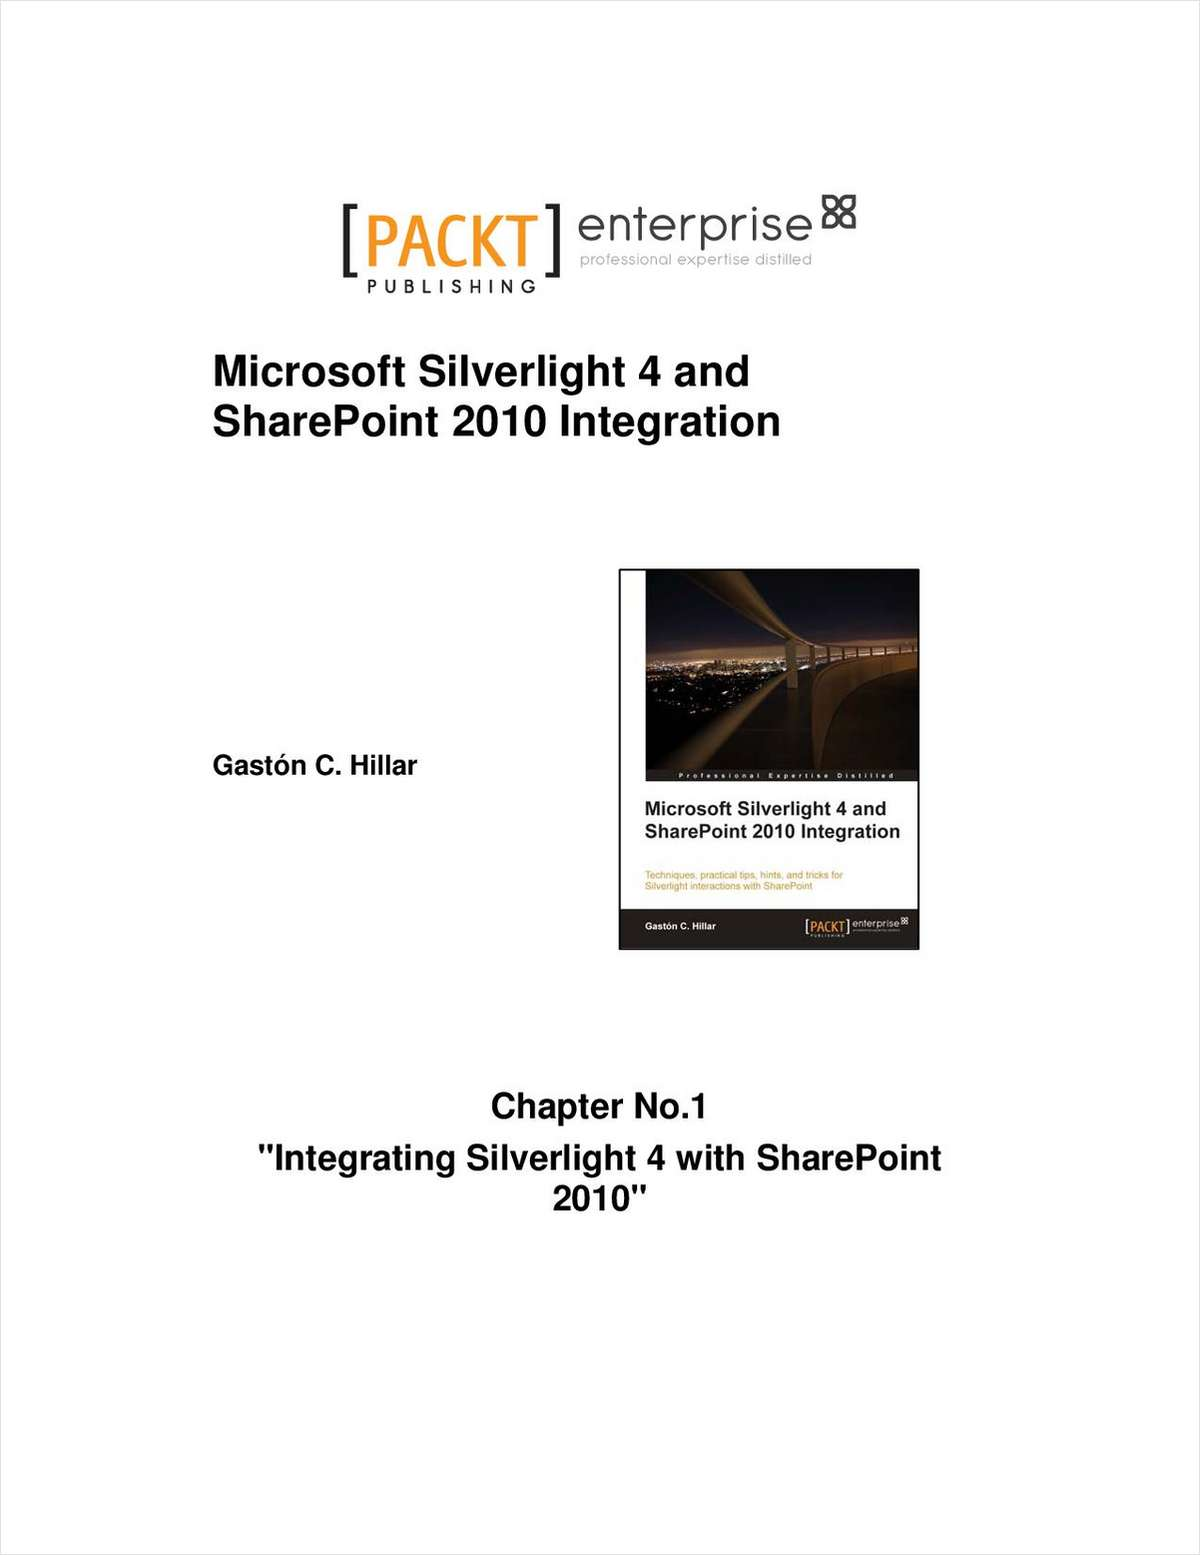 Integrating Silverlight 4 with SharePoint 2010 -- Free 42 Page Sample Chapter